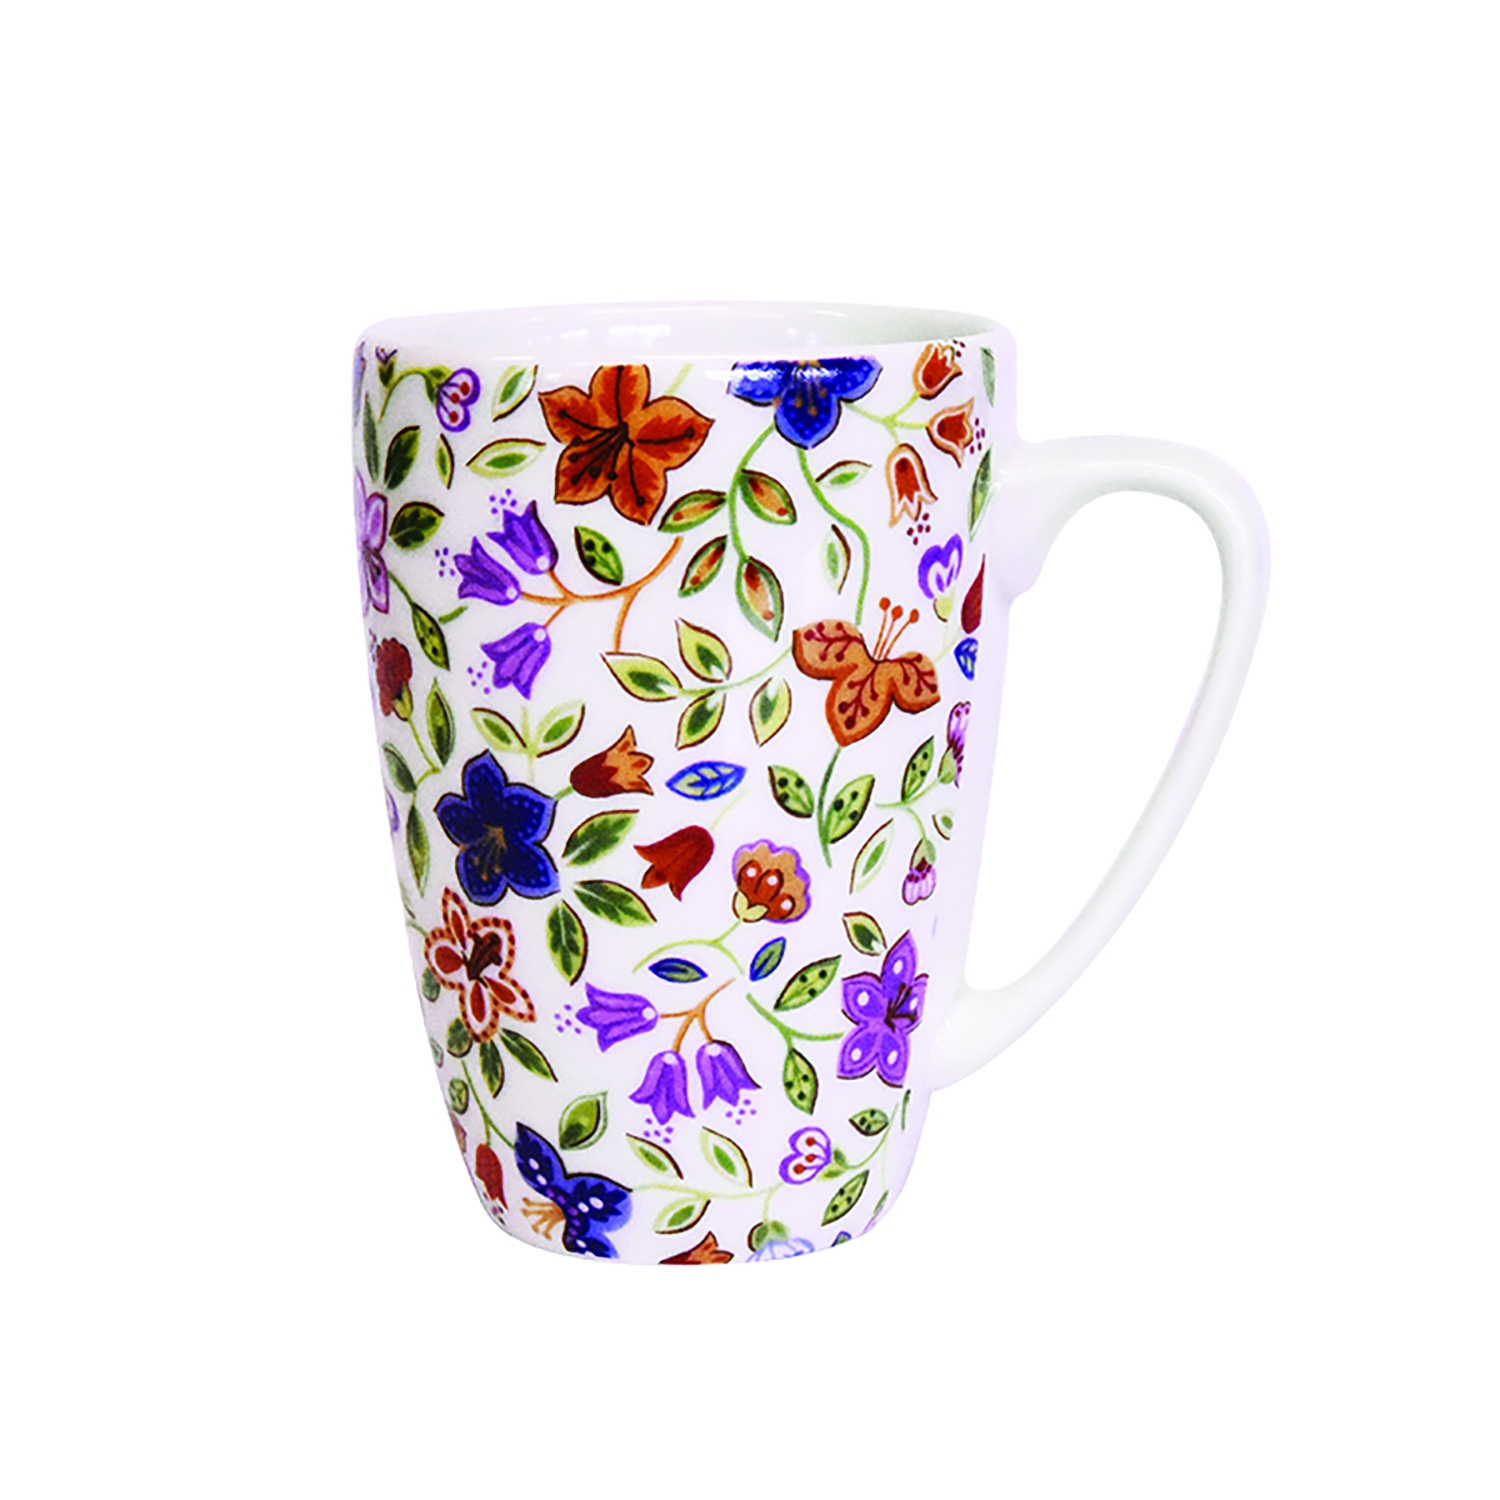 Image of Churchill China, Indigo Fields Mug, 275ml, Asstd